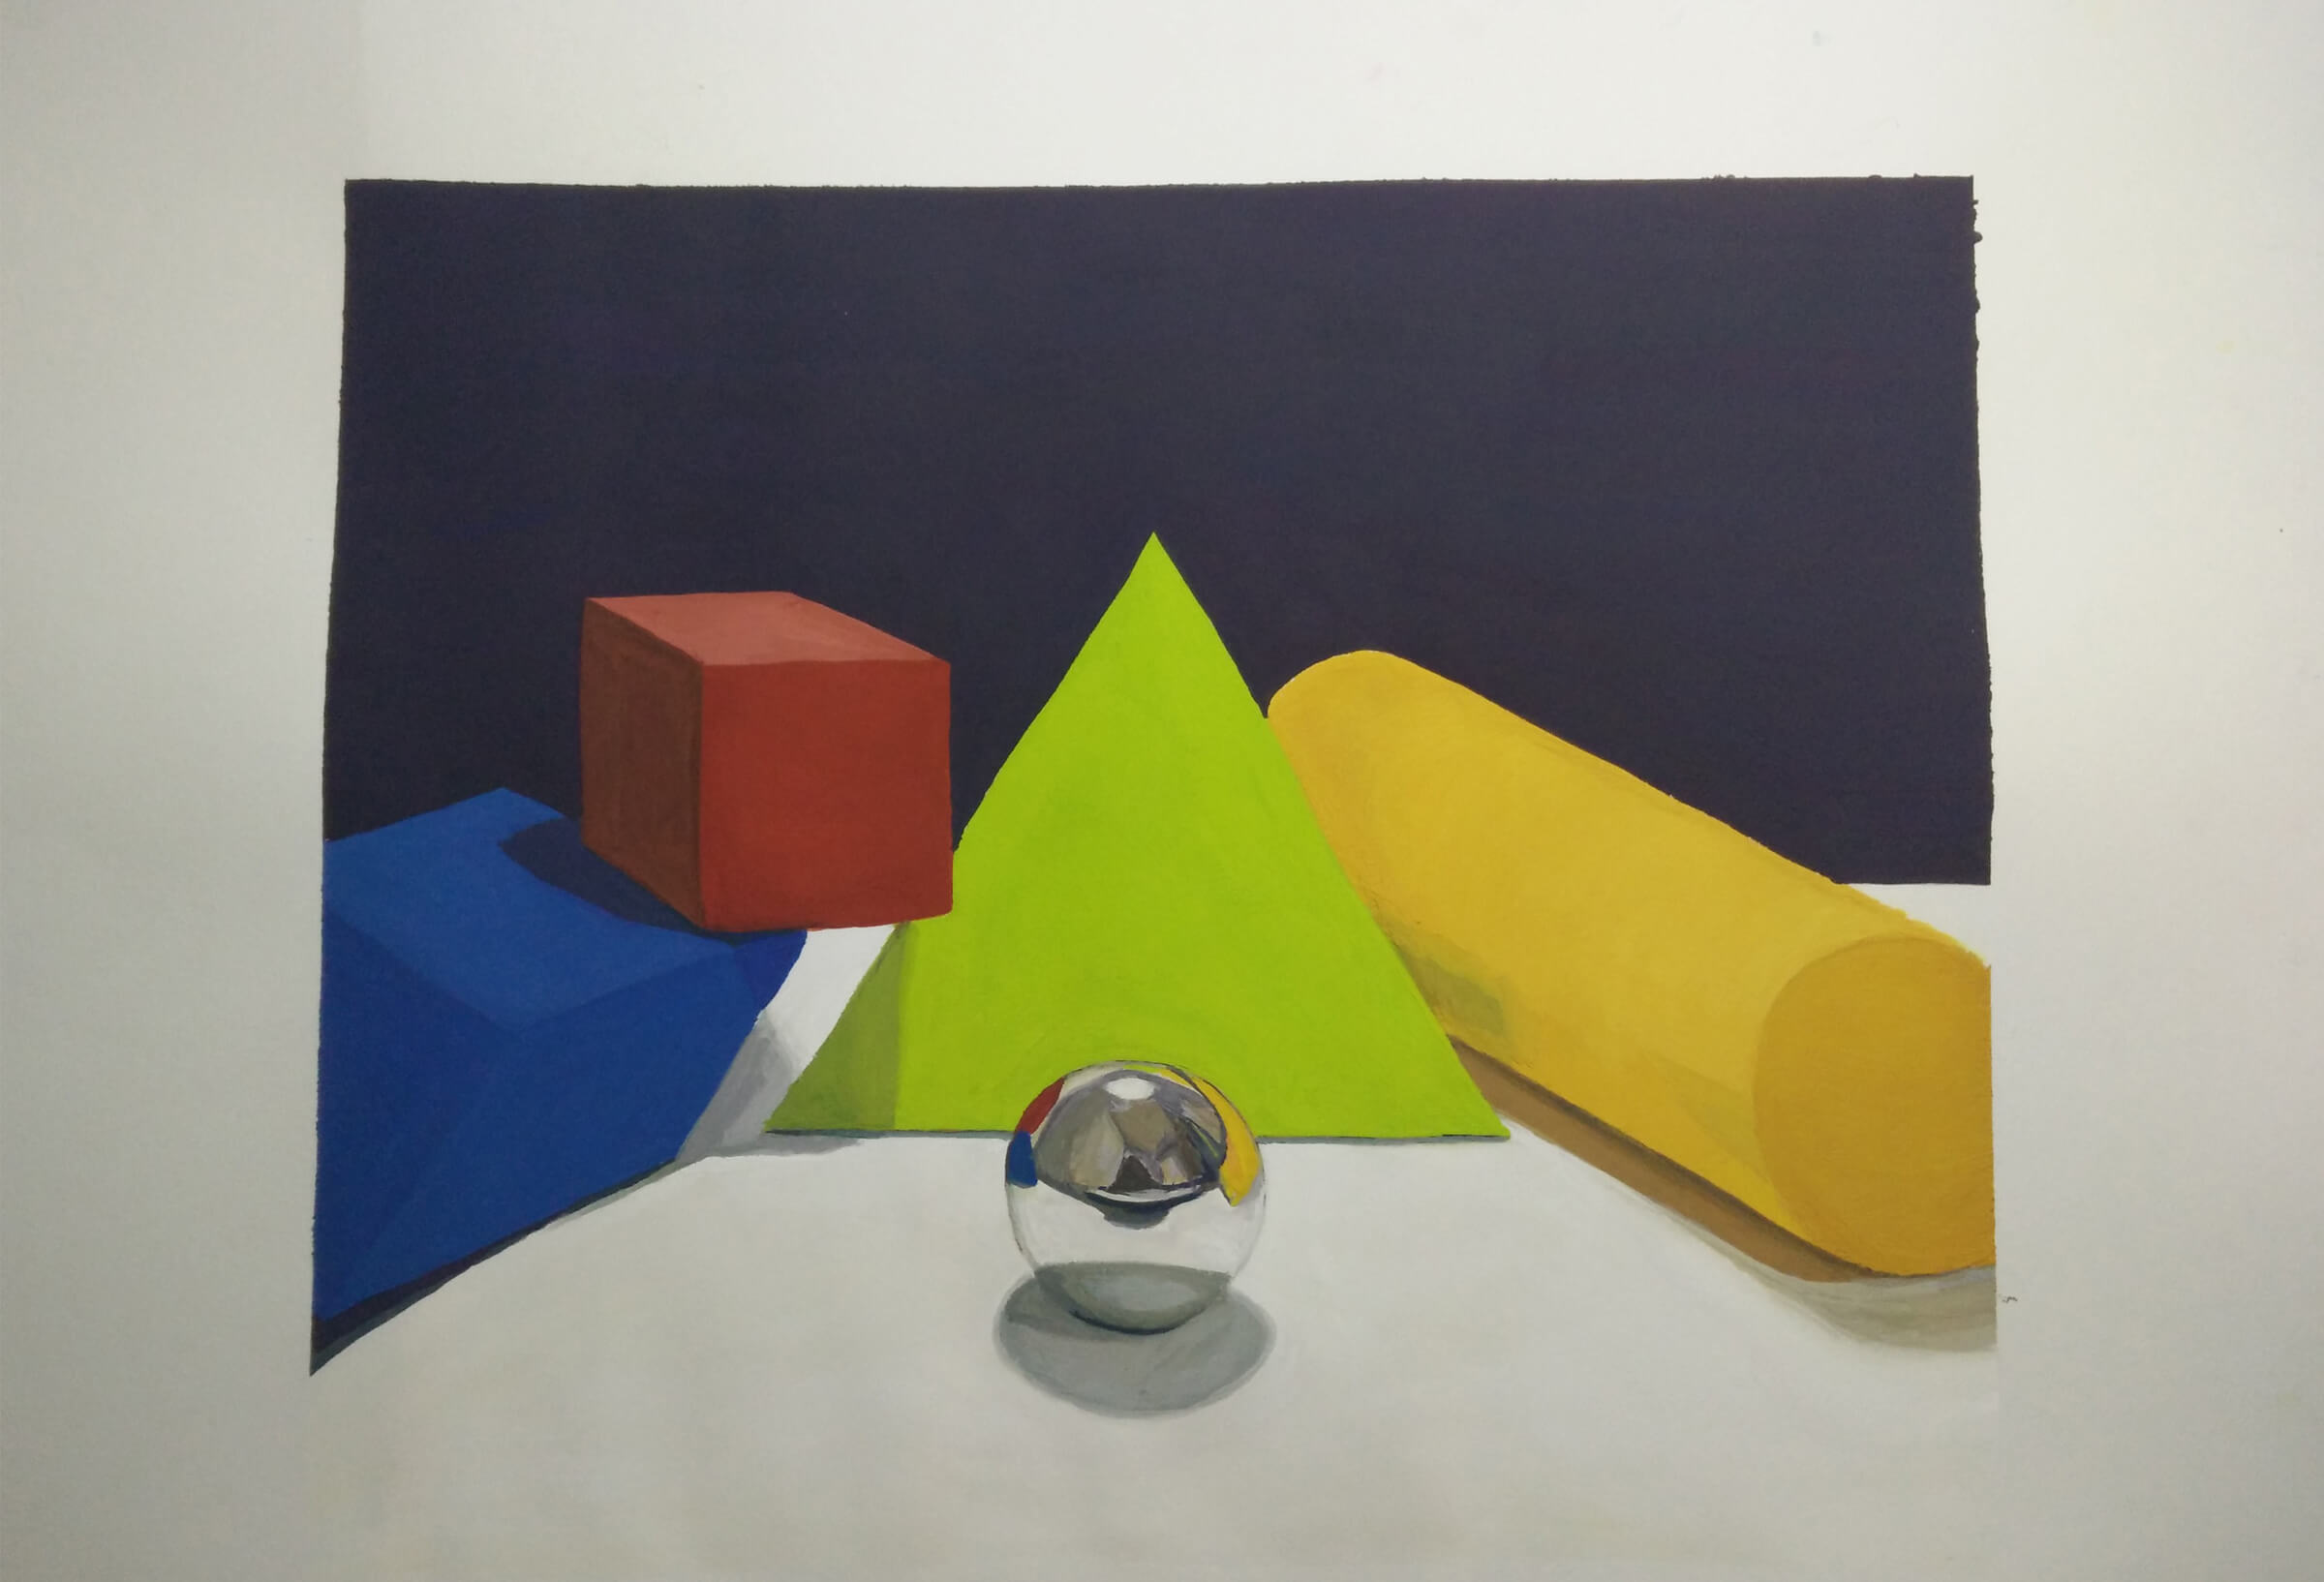 still-life traditional painting of a silver ball surrounded by primary-colored blocks in various geometric shapes